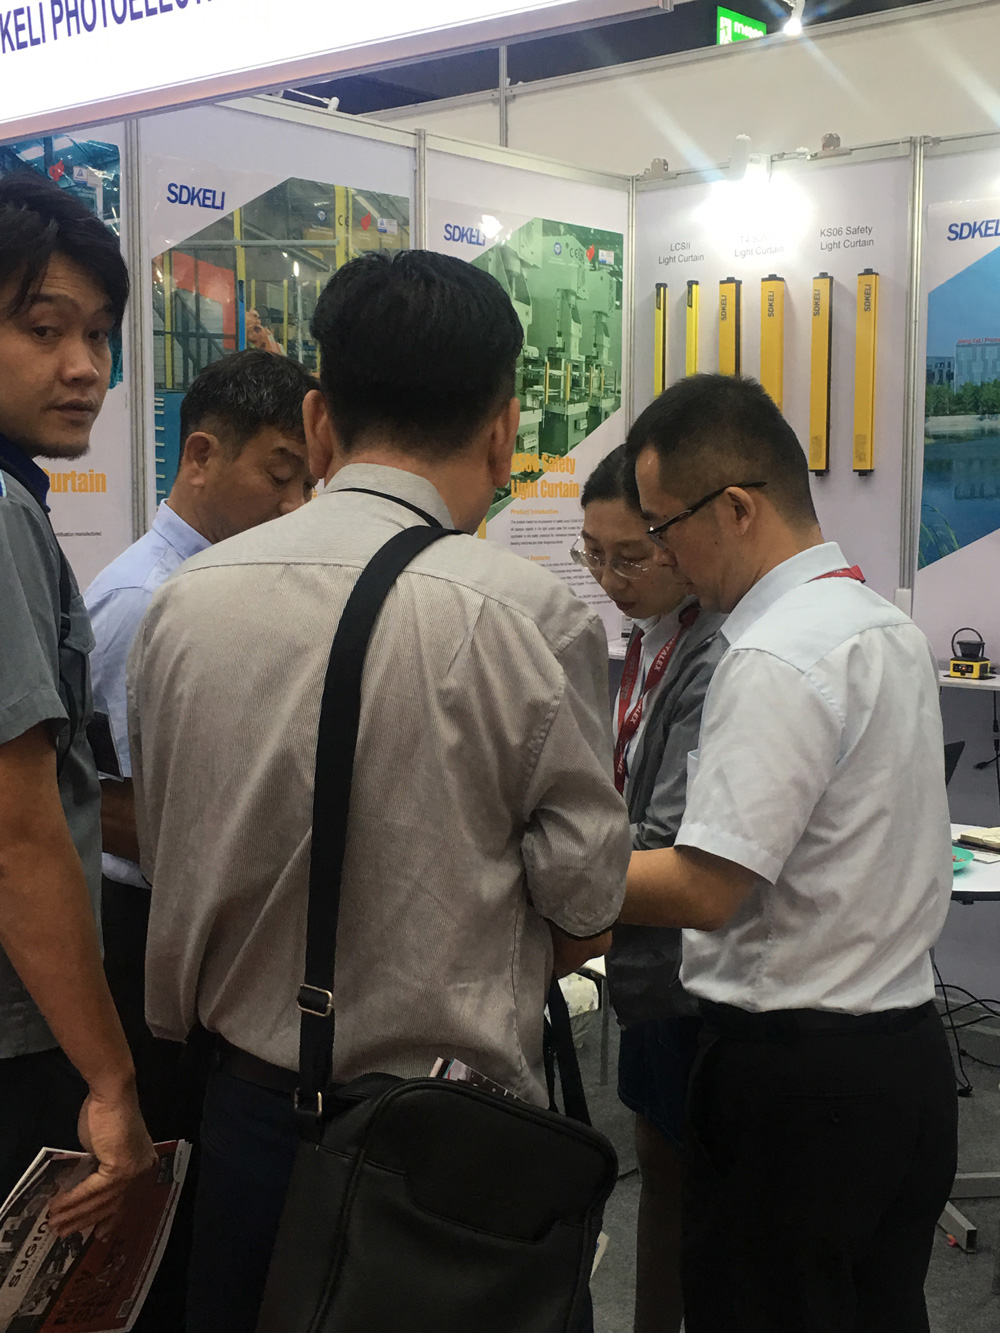 visitors at SDKELI booth to know about safety laser scanner and safety light curtain